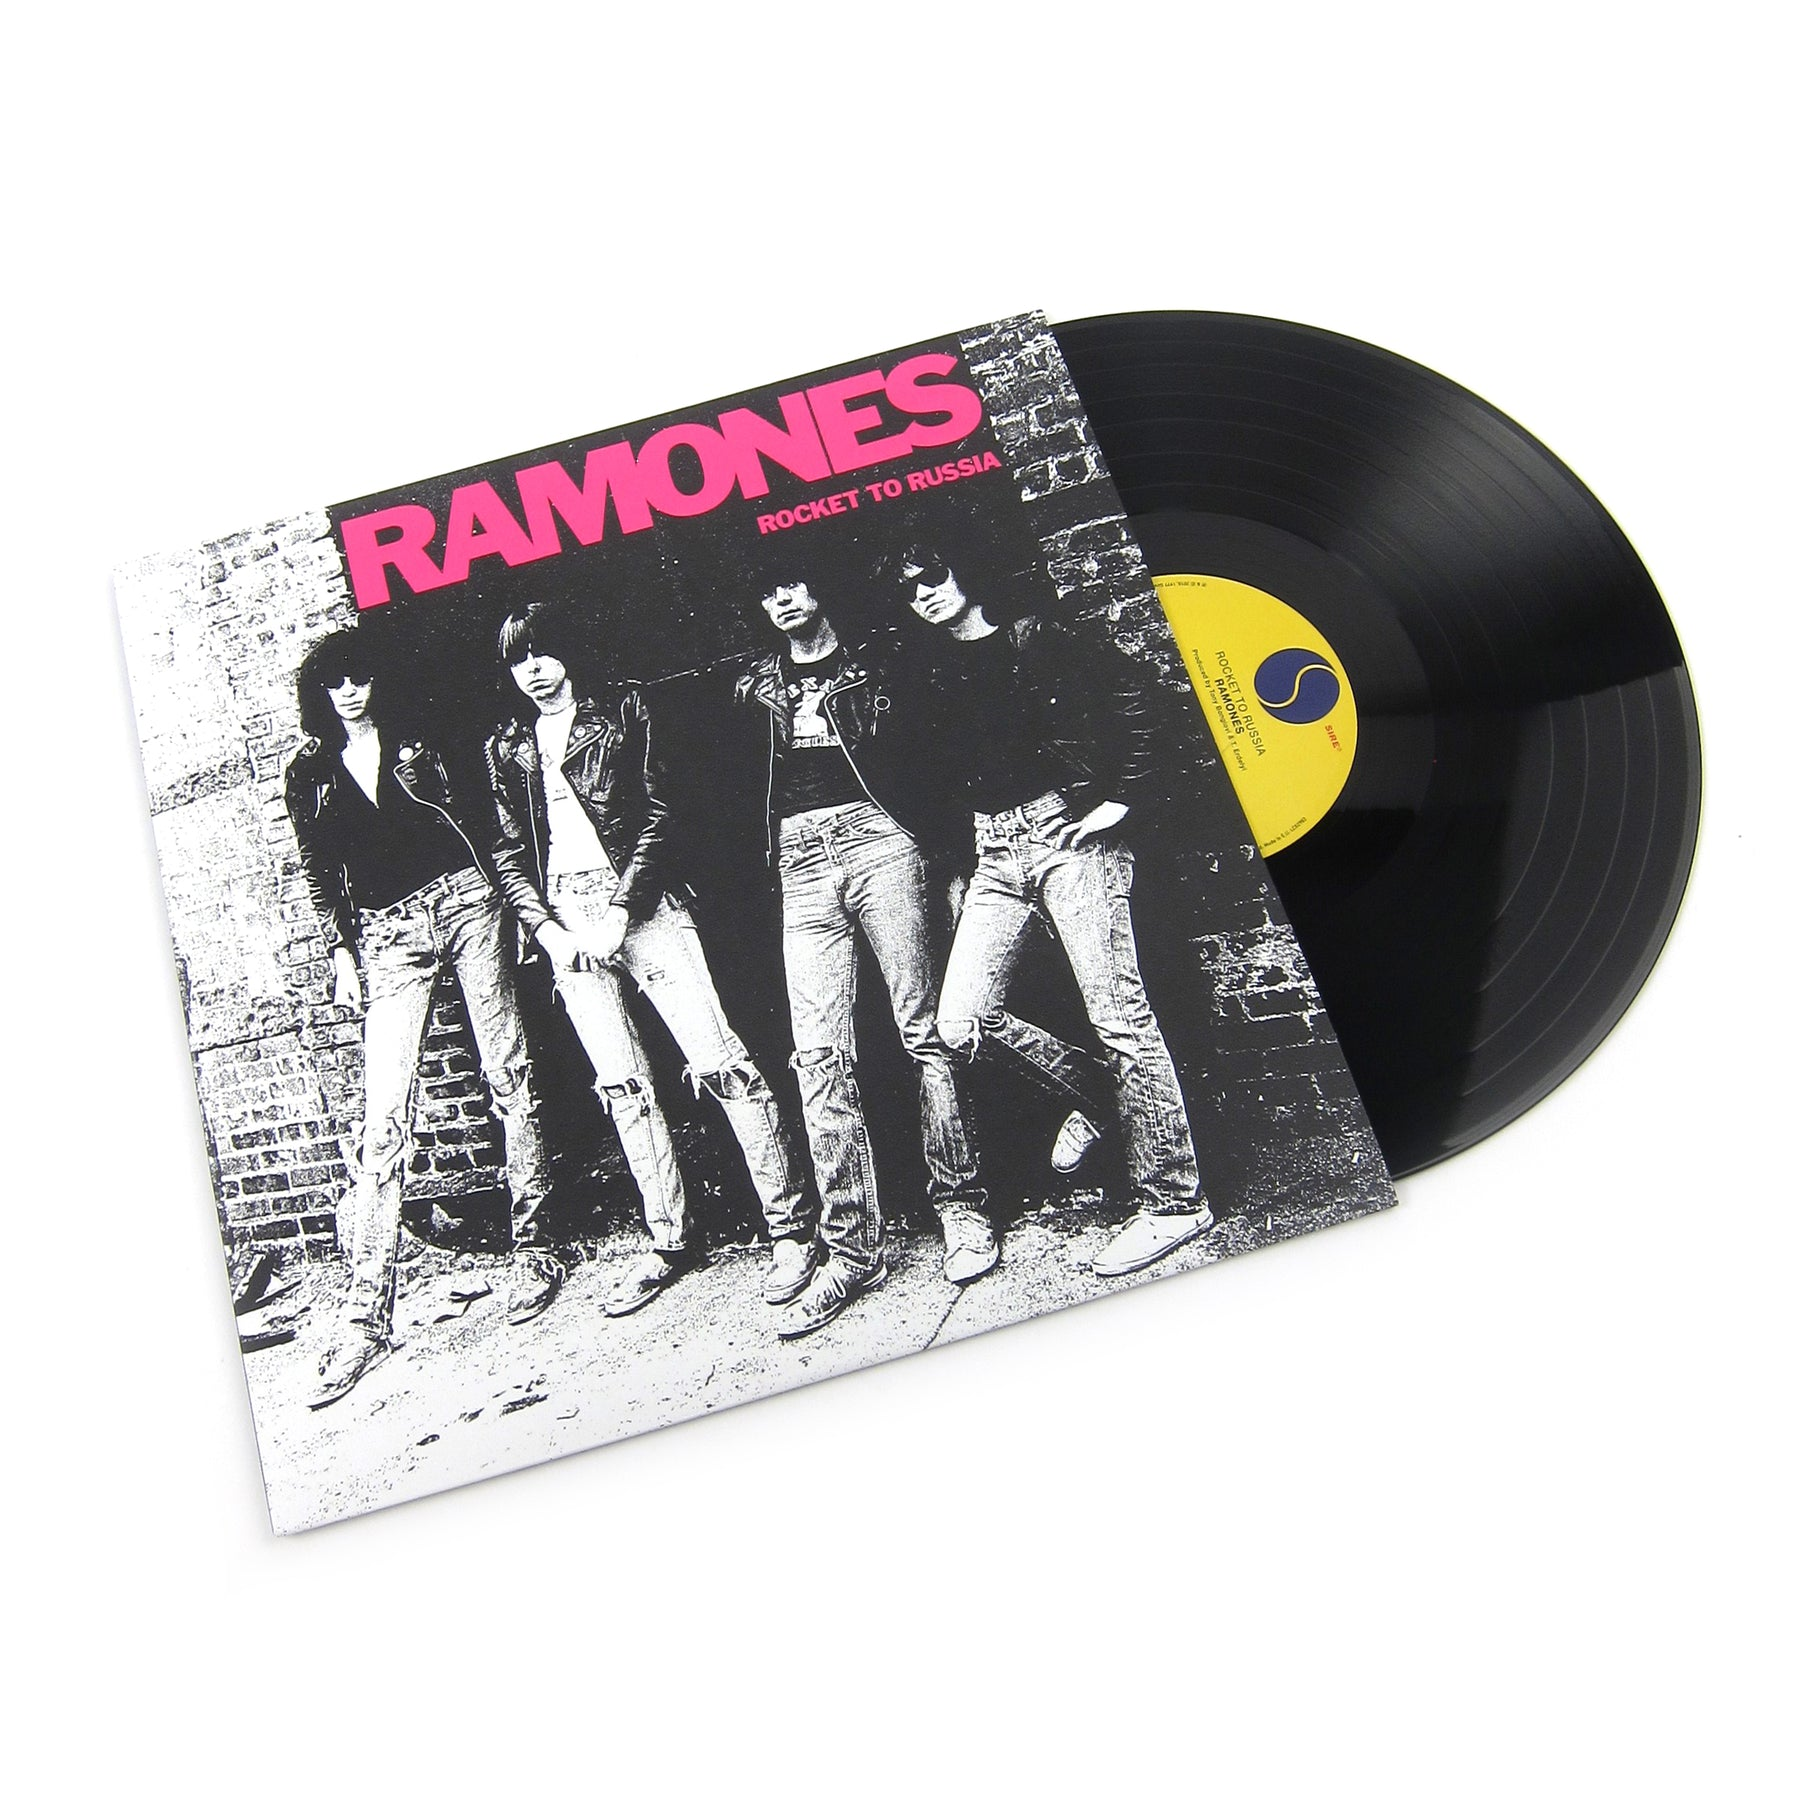 Ramones 180g Vinyl Lp Album Pack Ramones Leave Me Home